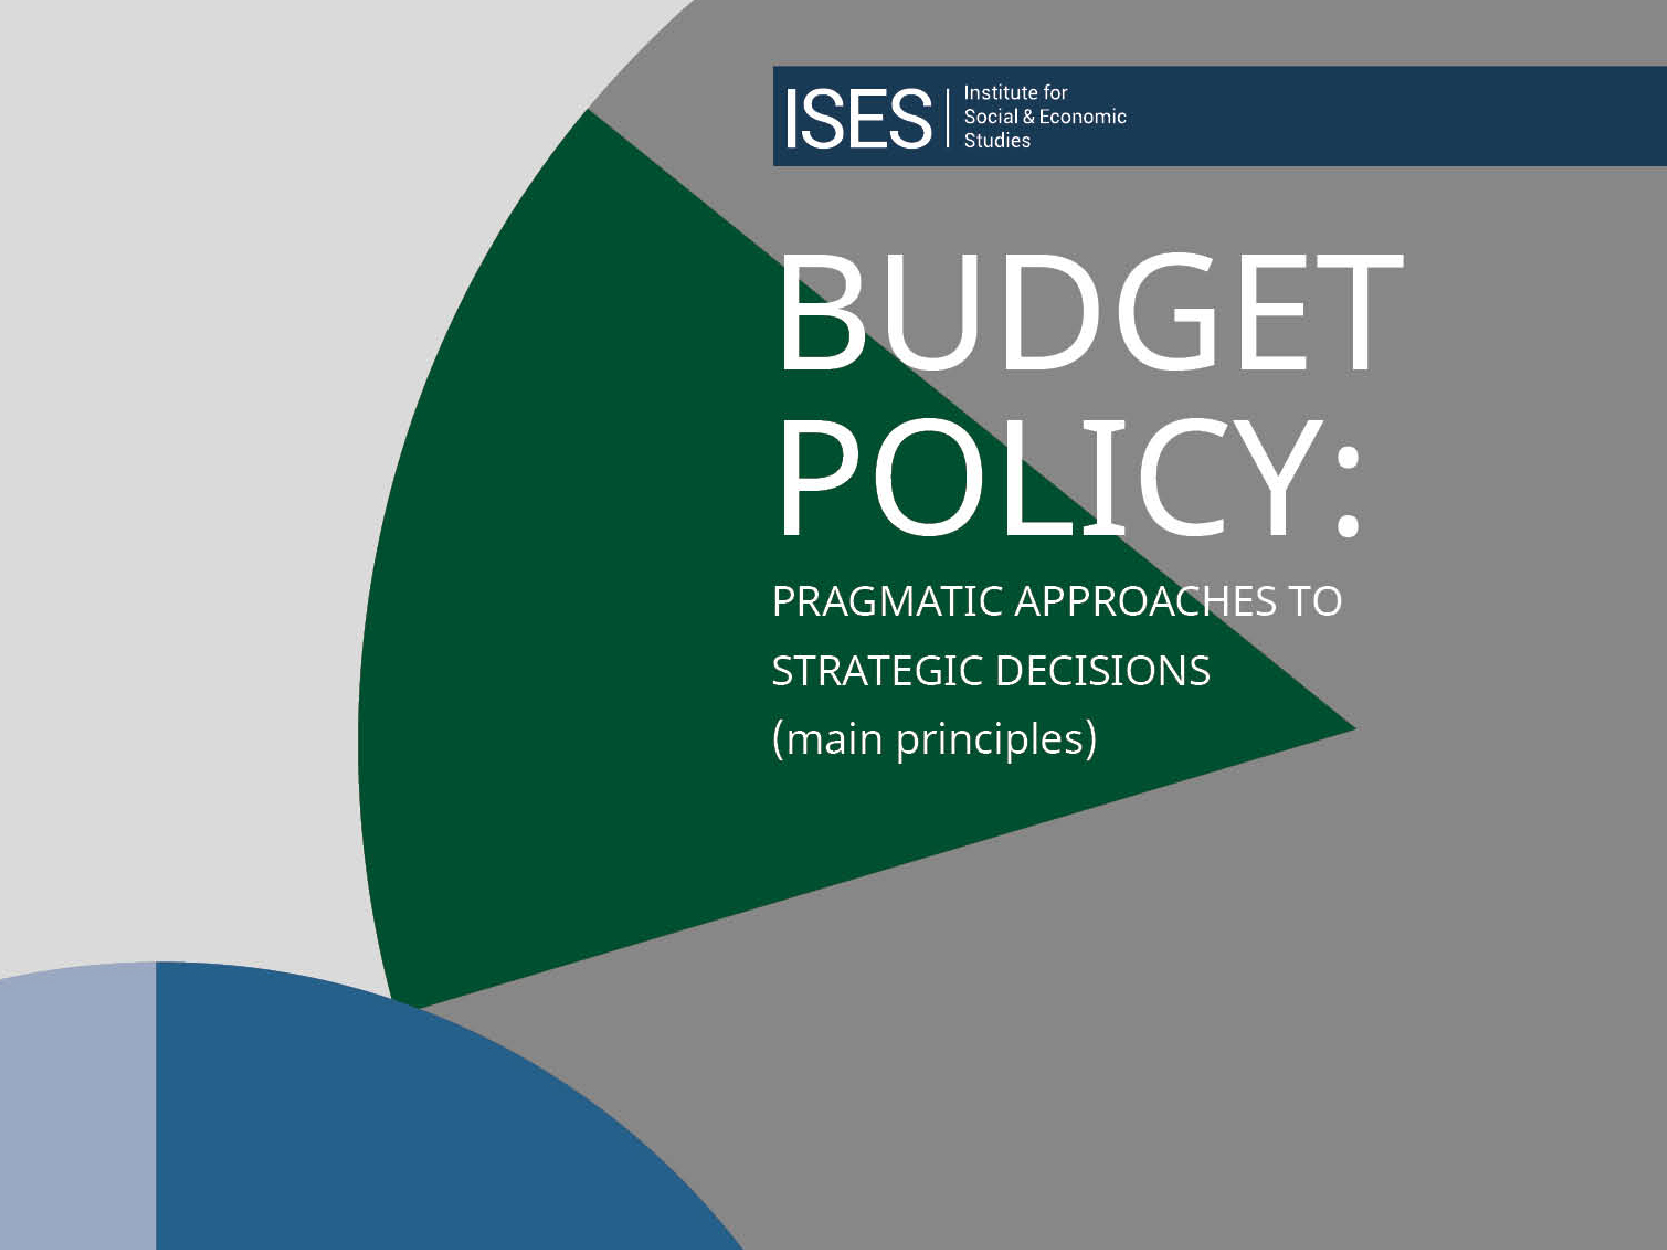 Budget policy: pragmatic approaches to strategic decisions